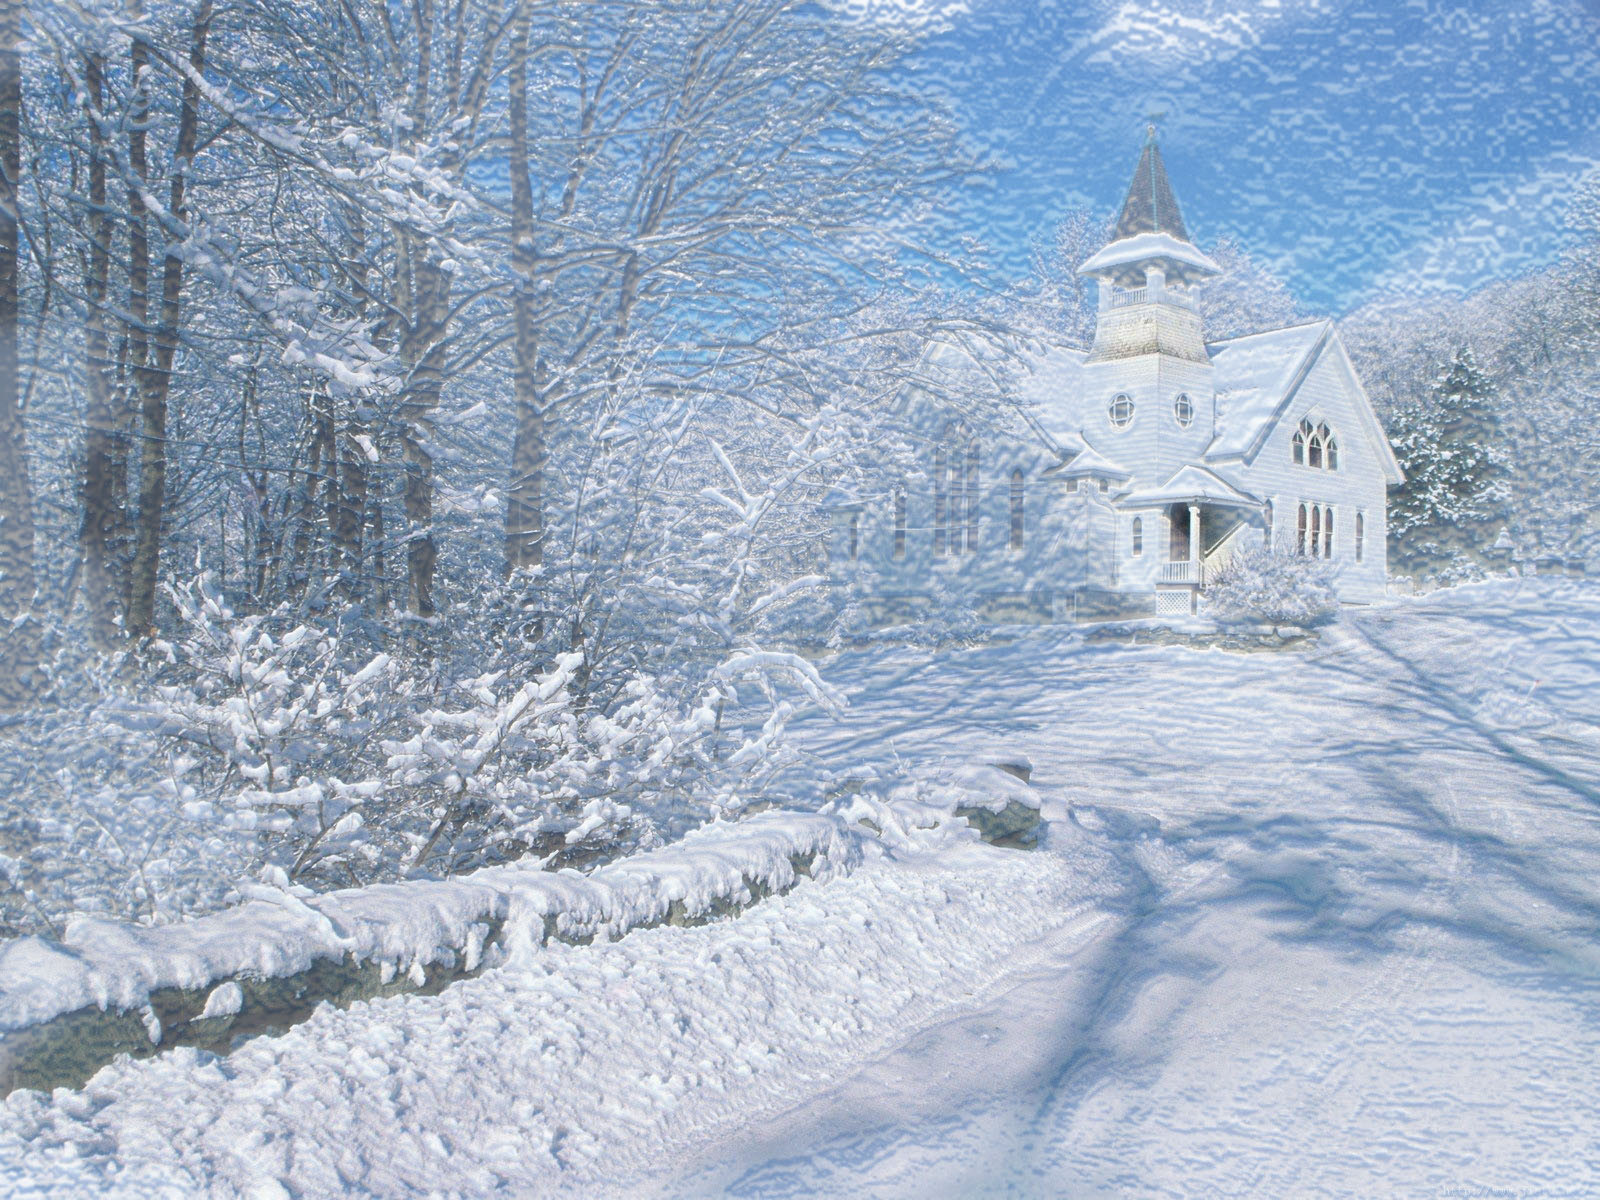 Winter Desktop Backgrounds ~ Free Wallpapers For PC